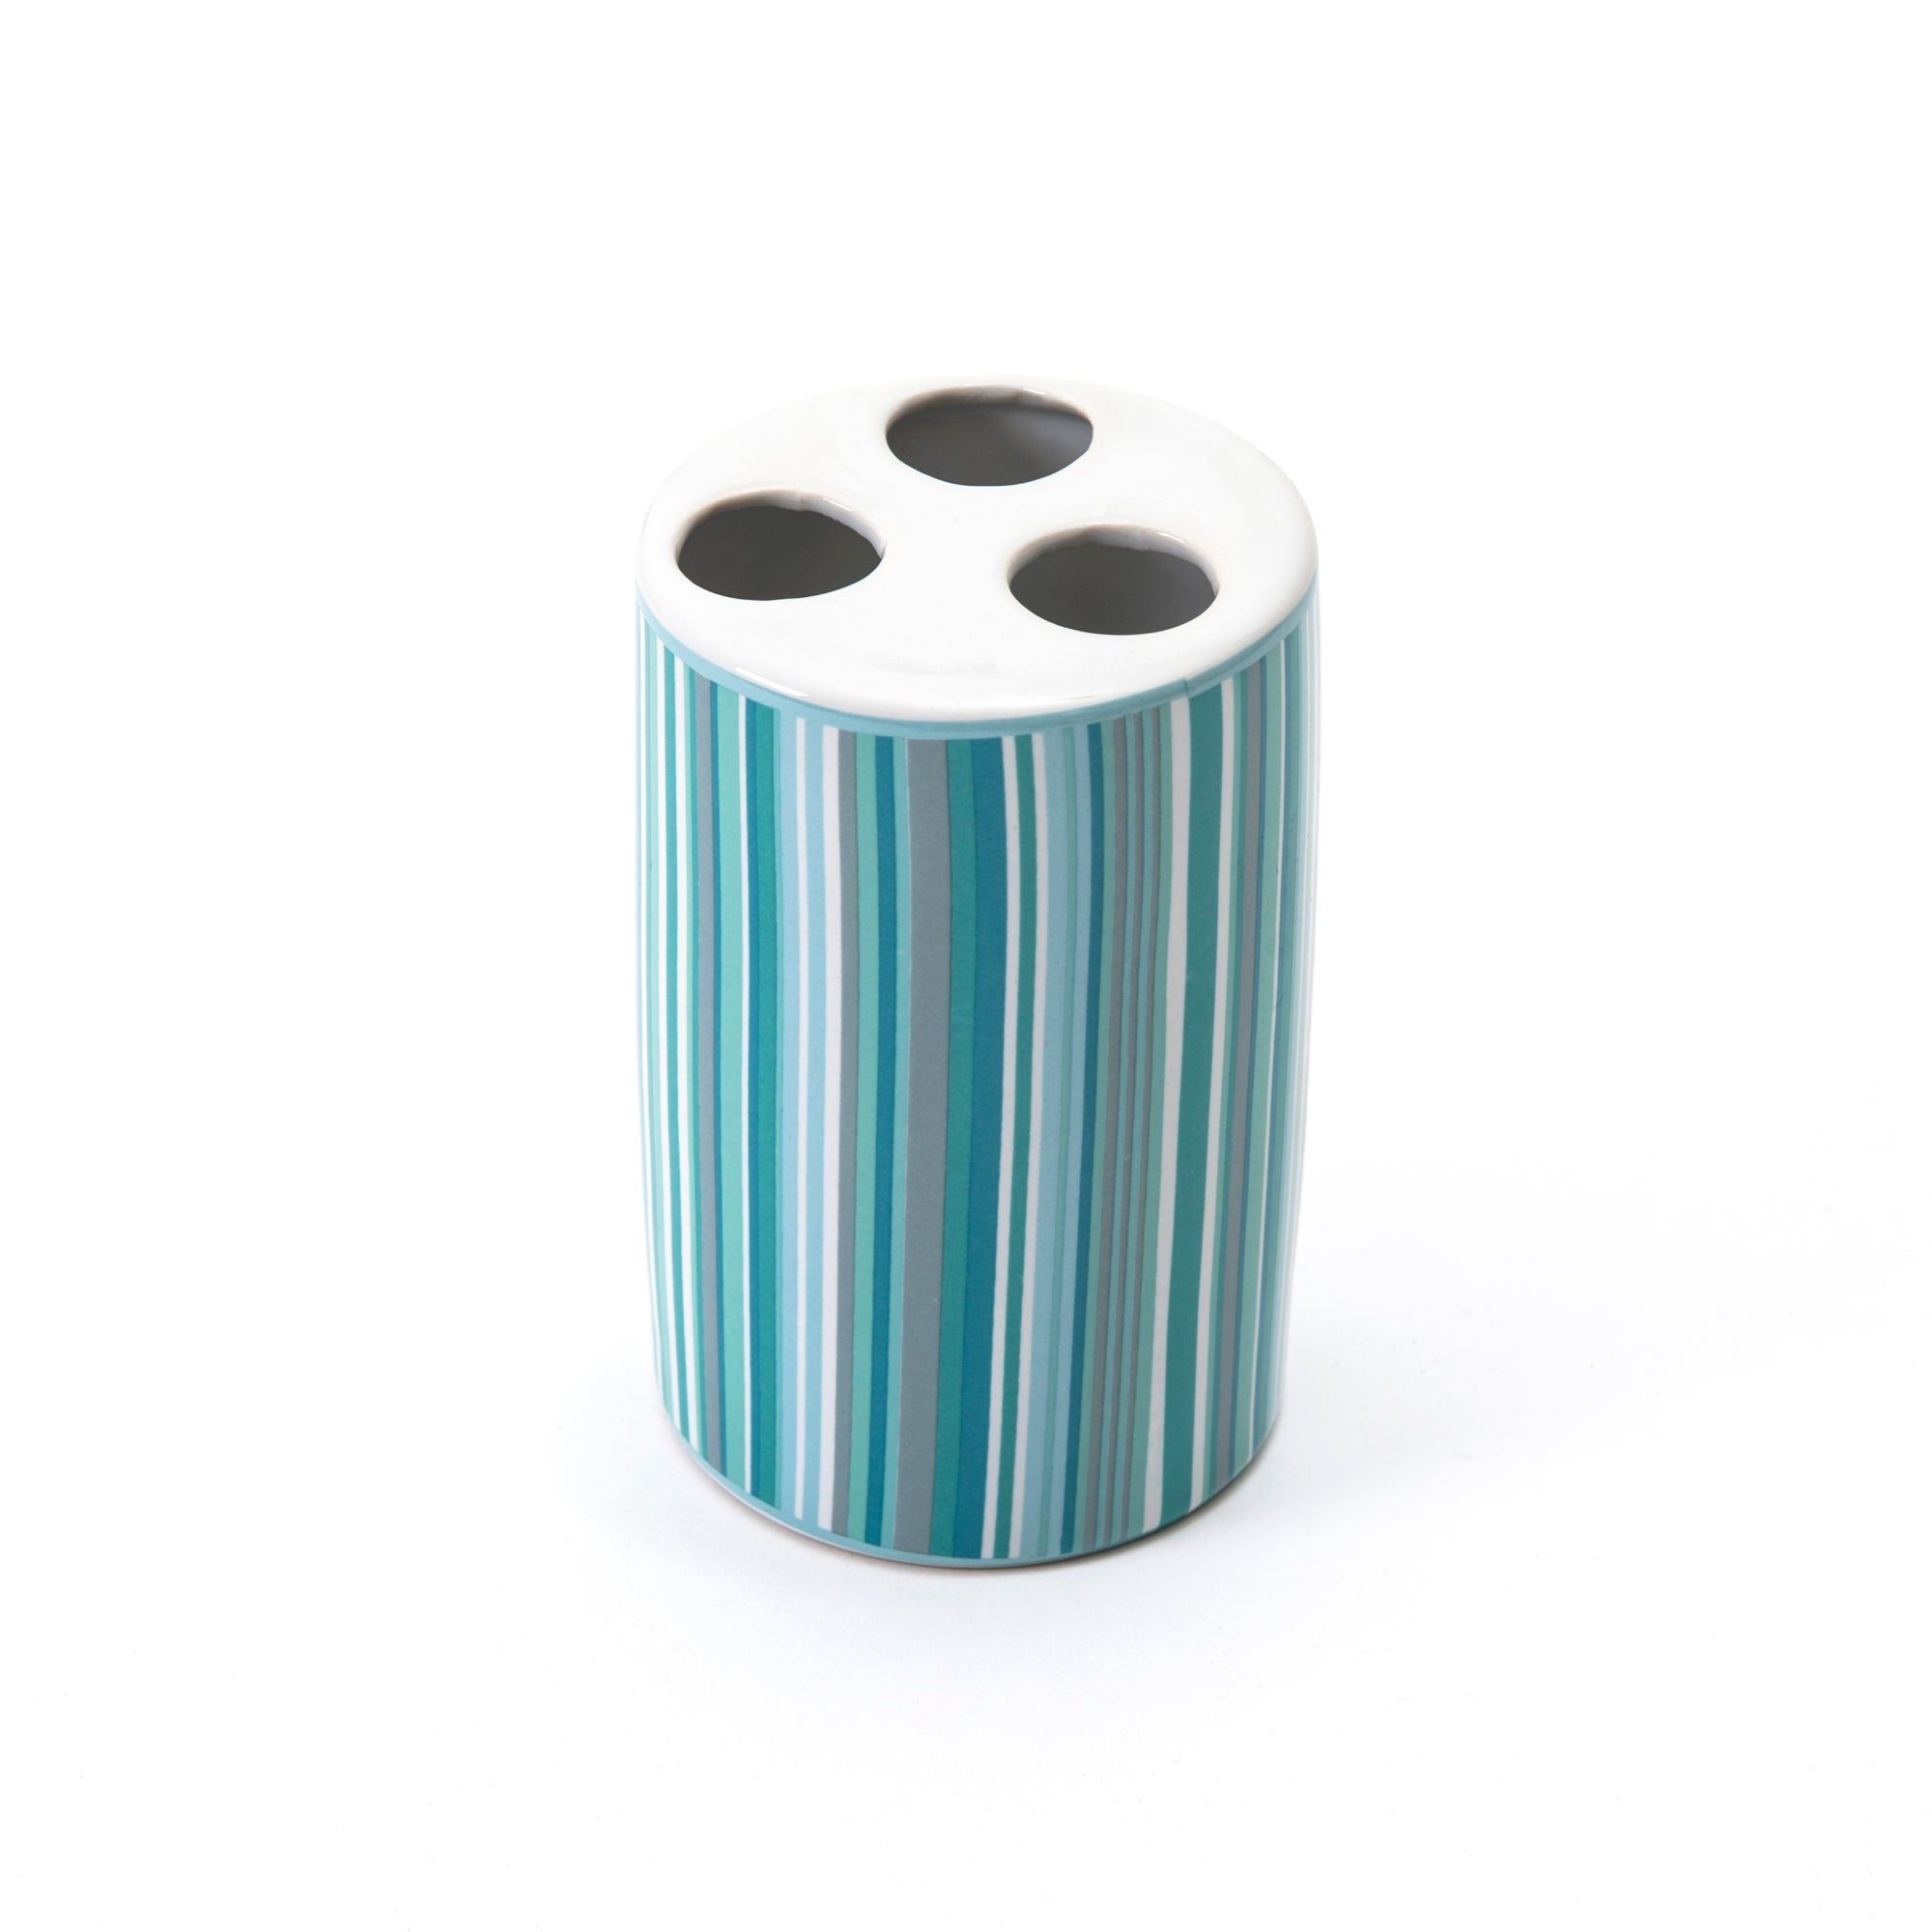 Teal Newhaven Collection Toothbrush Holder